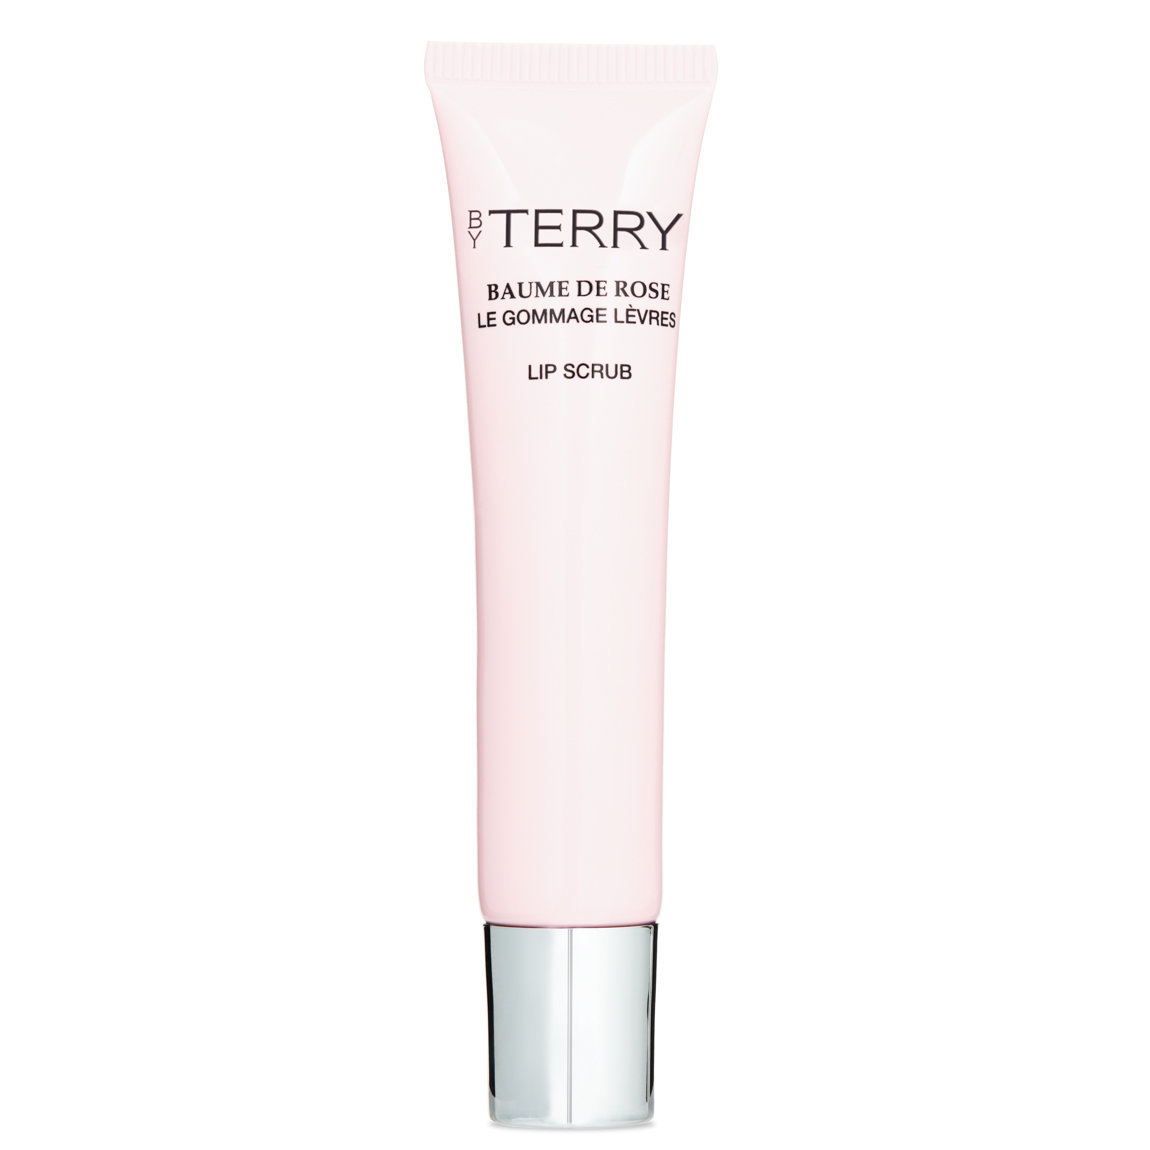 BY TERRY Baume de Rose Lip Scrub alternative view 1 - product swatch.